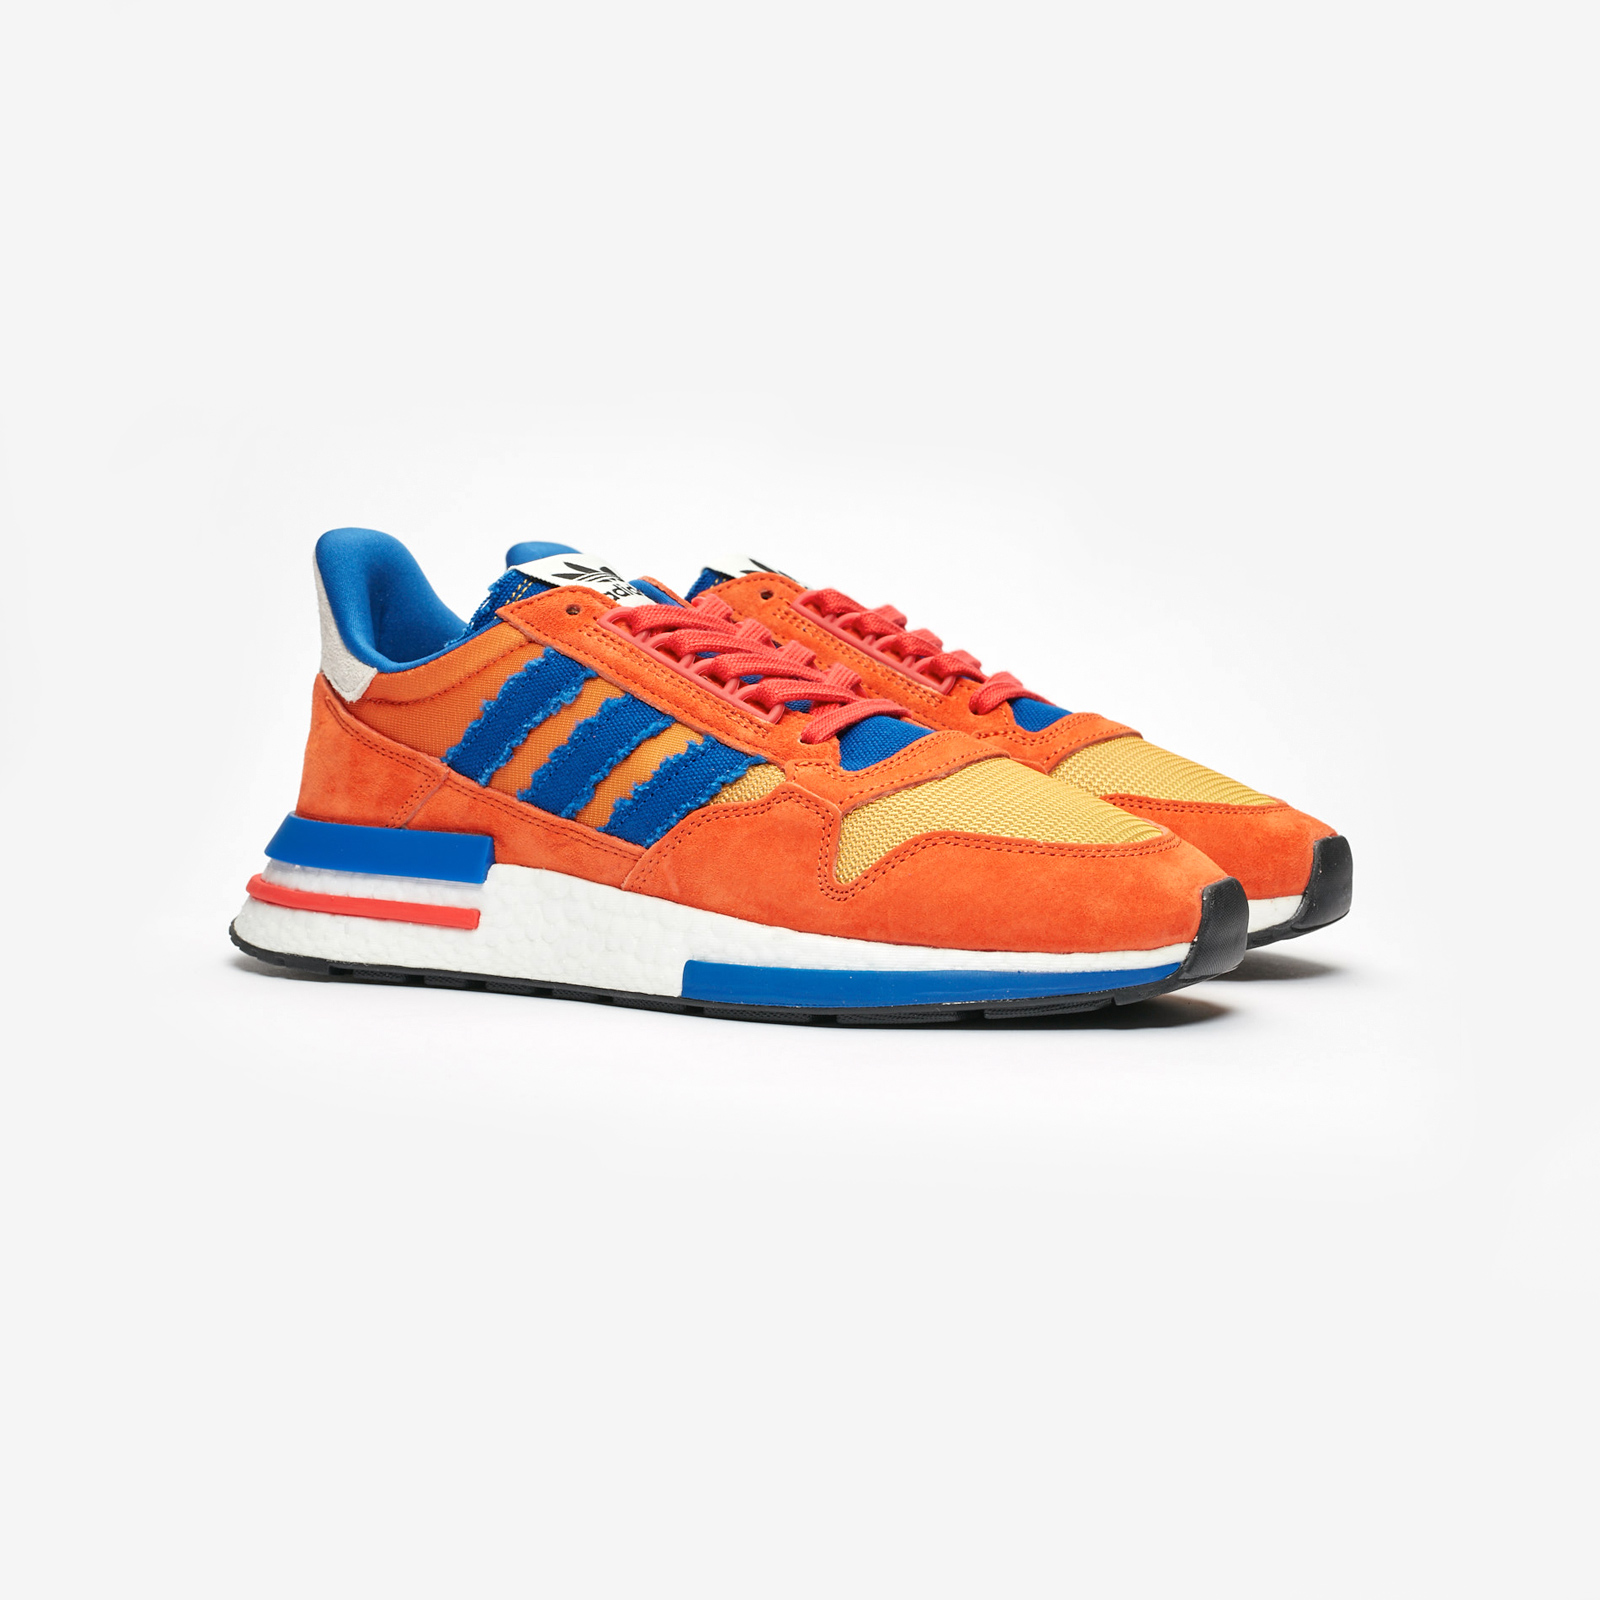 17097be9a0a9d adidas ZX 500 RM x Dragon Ball Z - D97046 - Sneakersnstuff ...